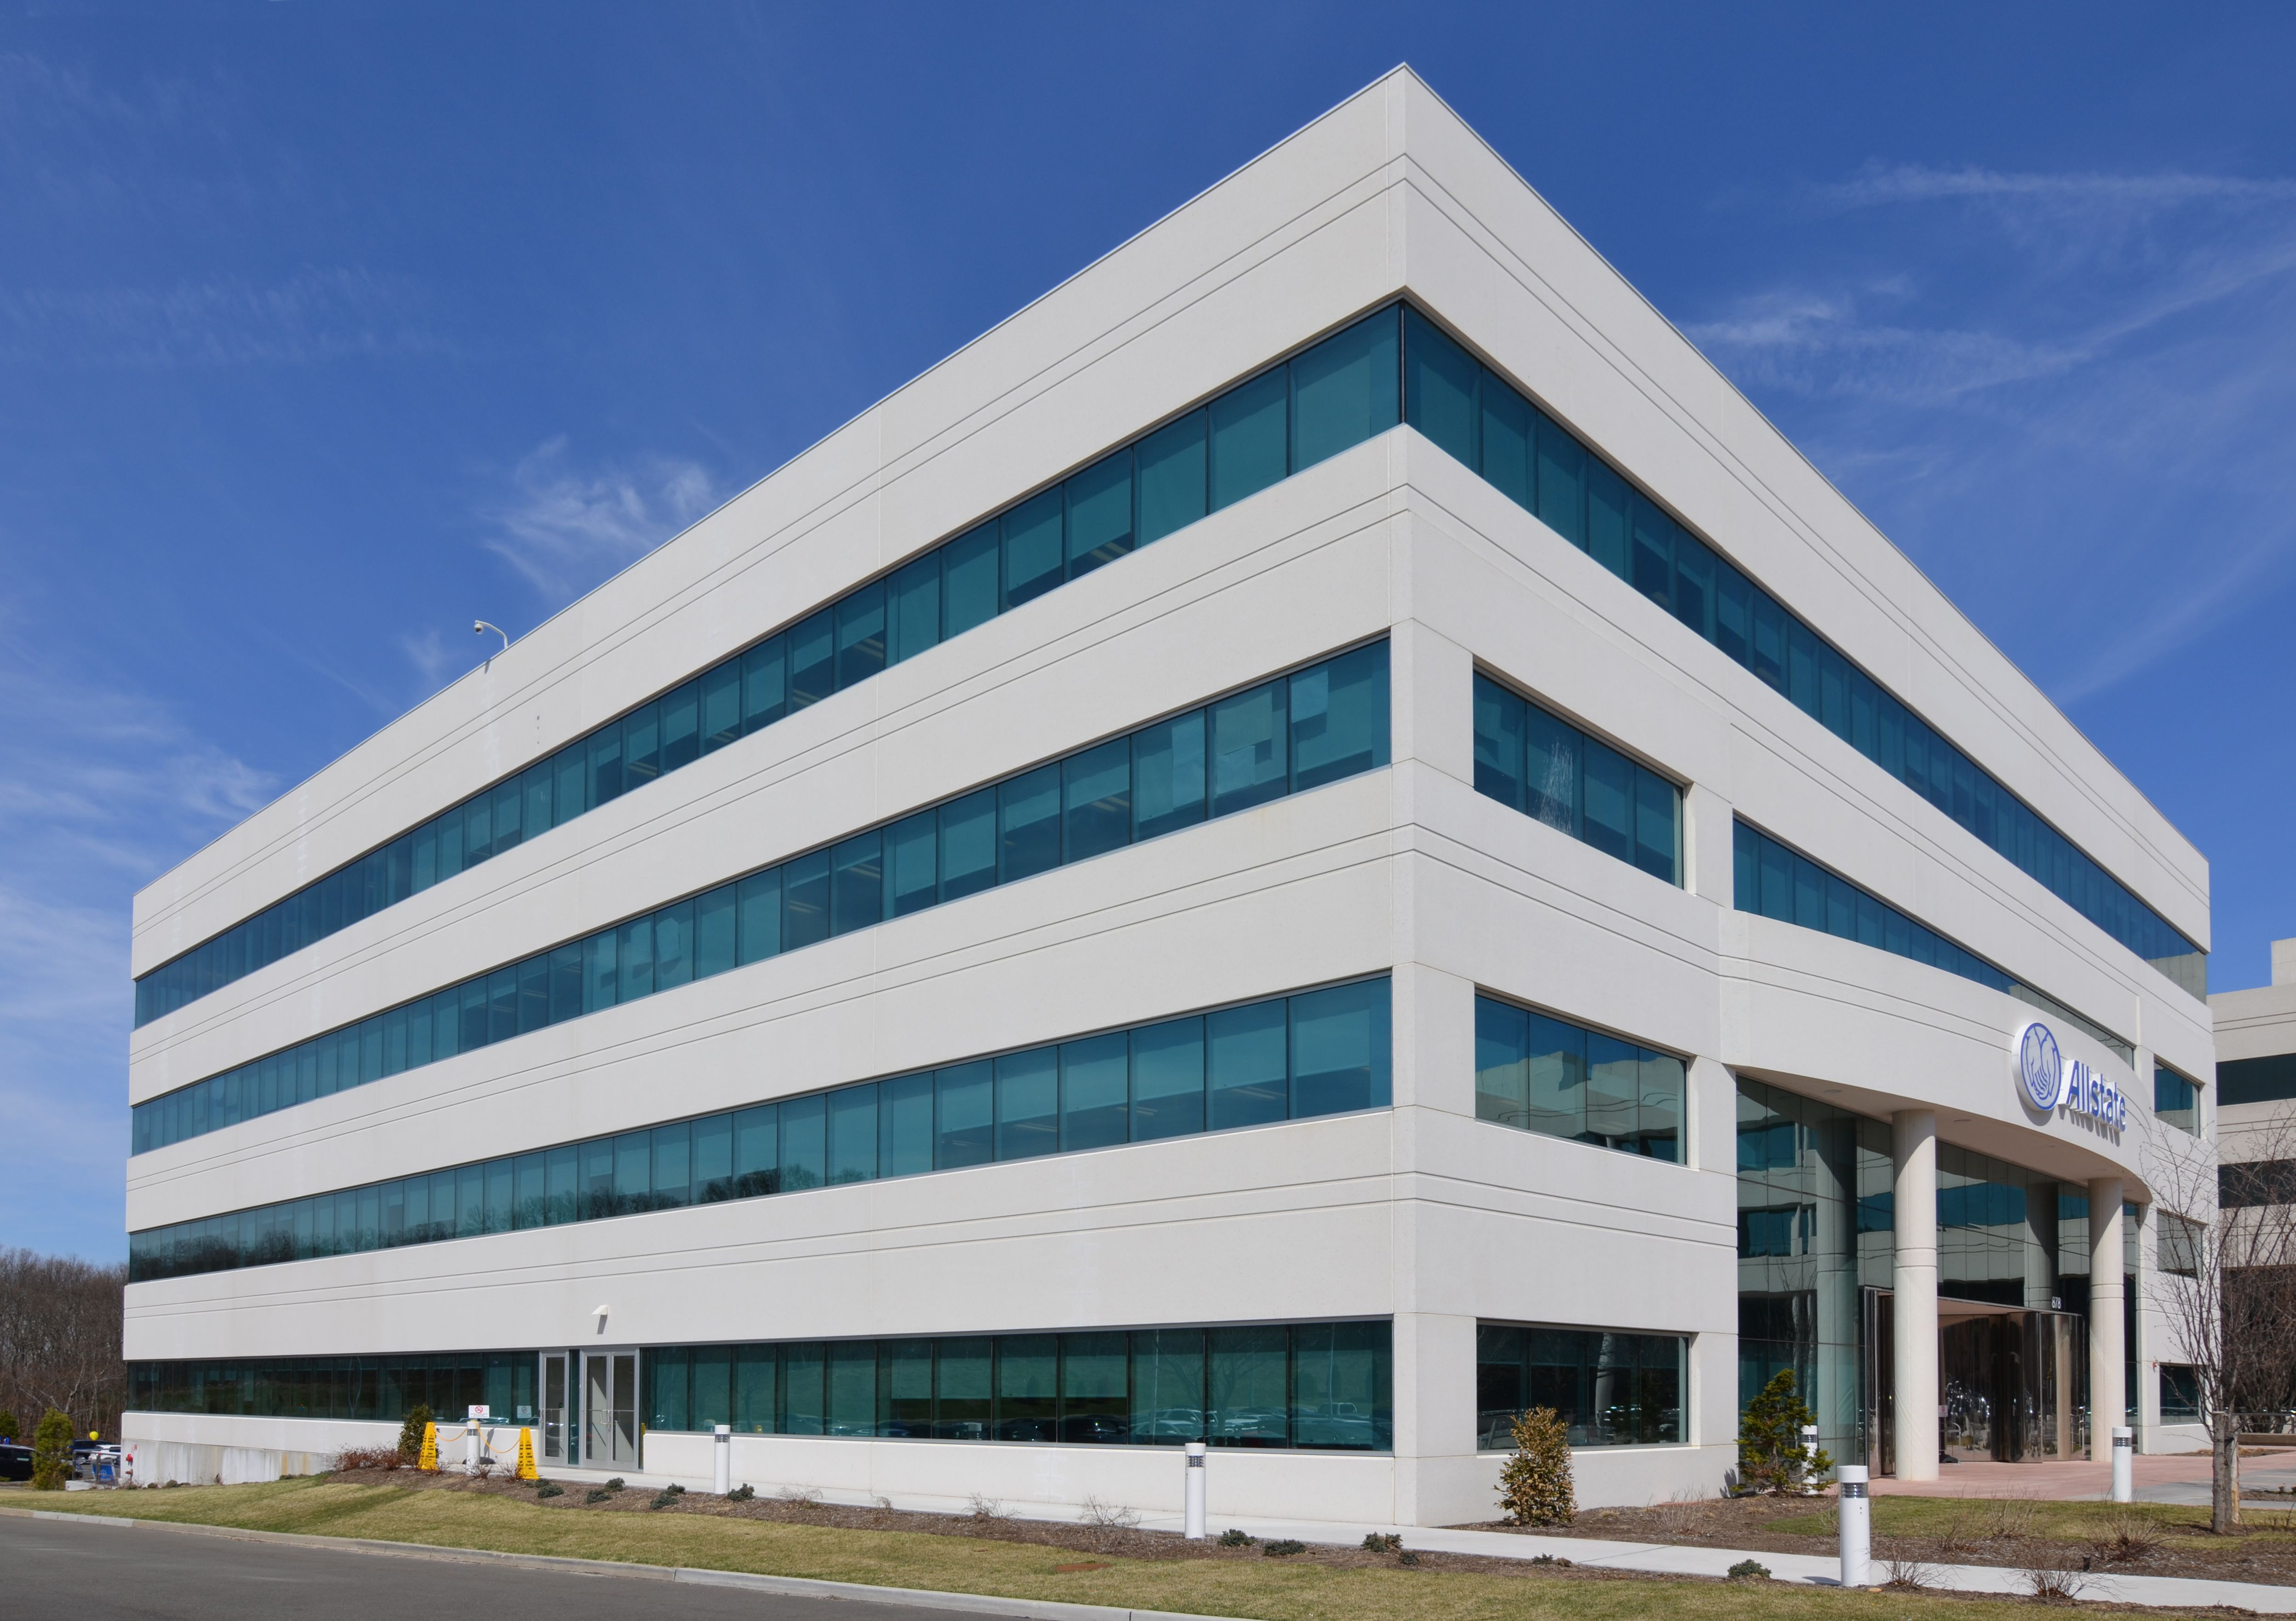 Here Is Another View Of Allstate Headquarters At The Happaugue